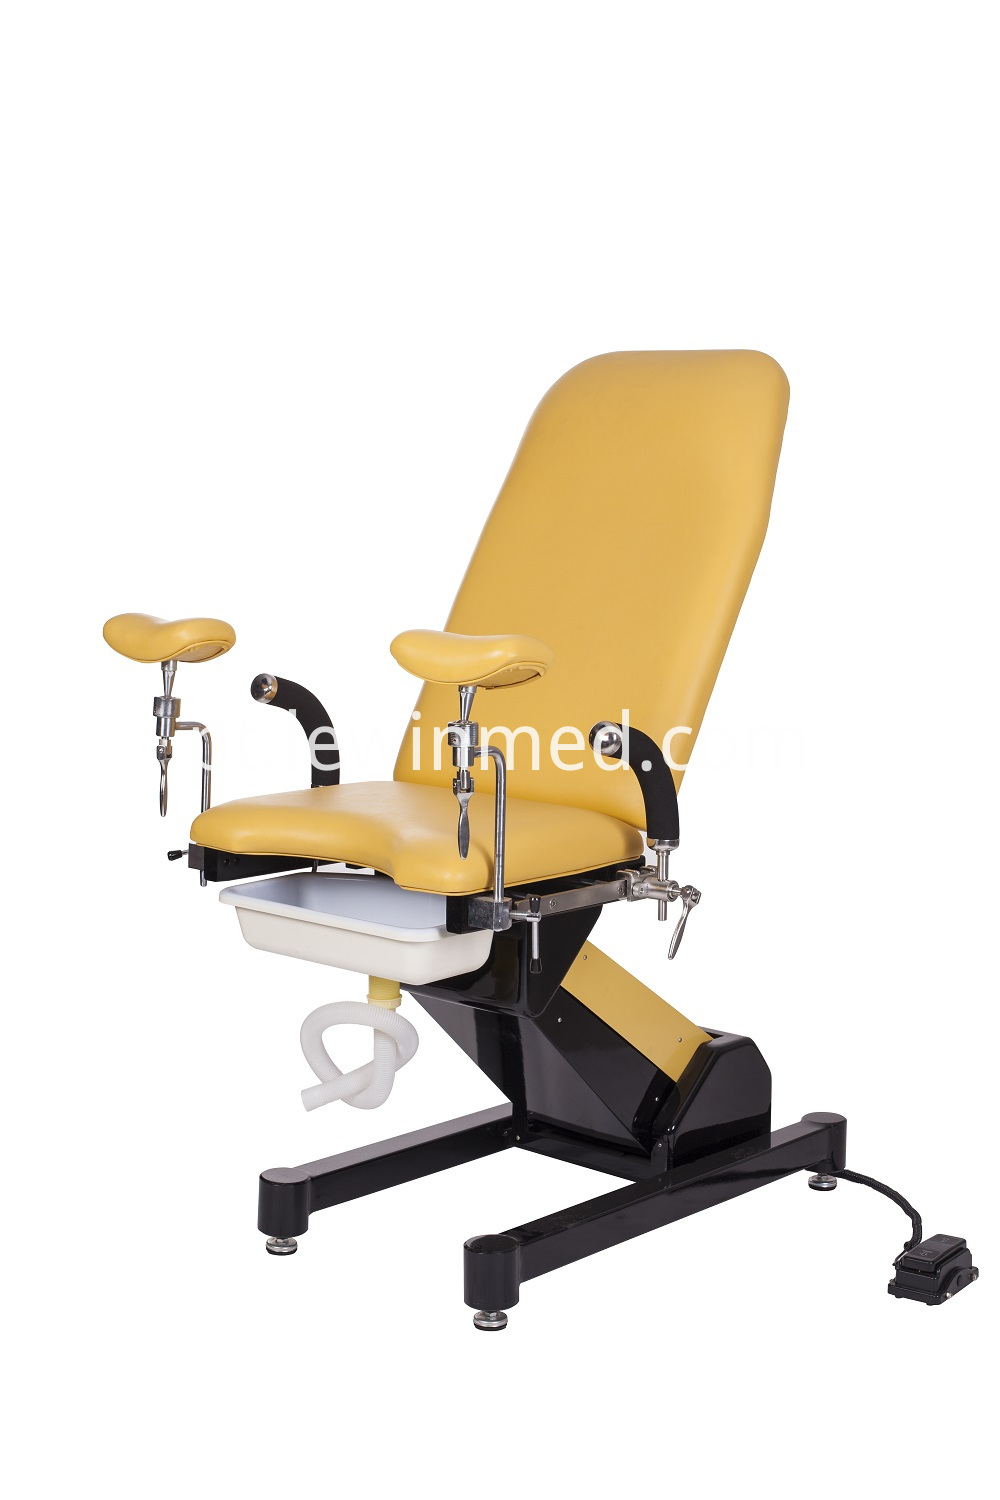 Gynecological Exam Bed